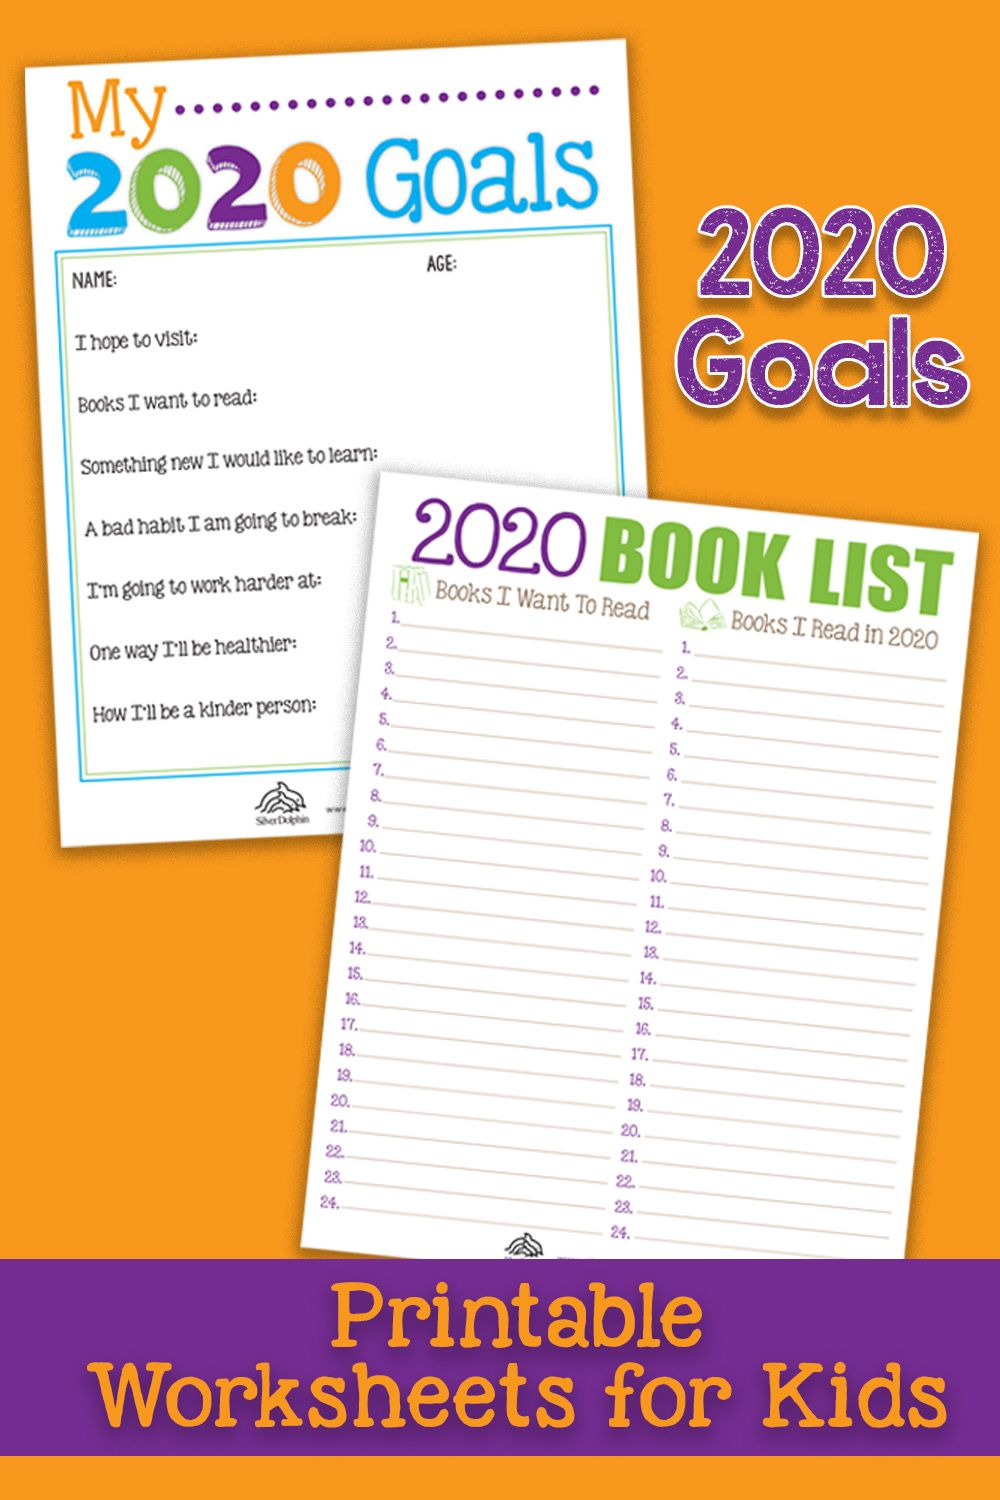 Goal Setting And Reading Worksheets For Kids Worksheets For Kids Reading Worksheets Lessons For Kids [ 1500 x 1000 Pixel ]